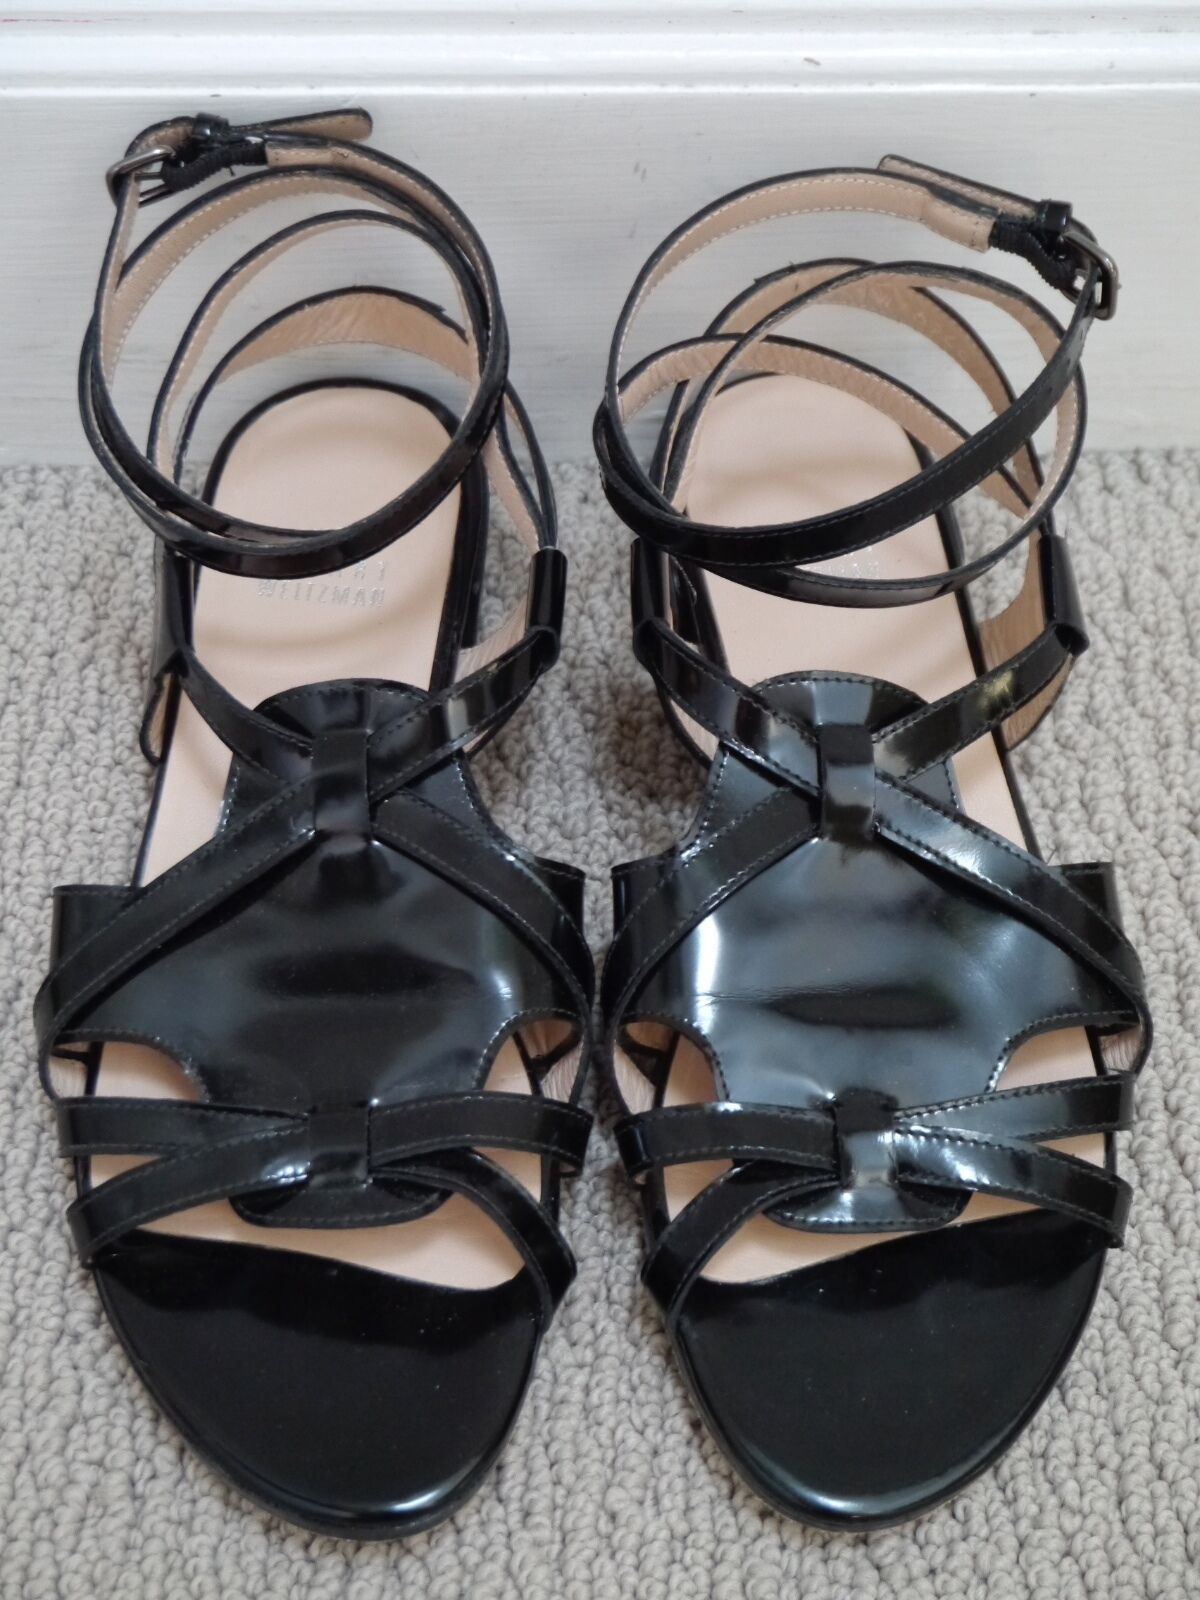 STUART WEITZMAN black patent leather strappy ankle wrap flat sandals 7 WORN ONCE